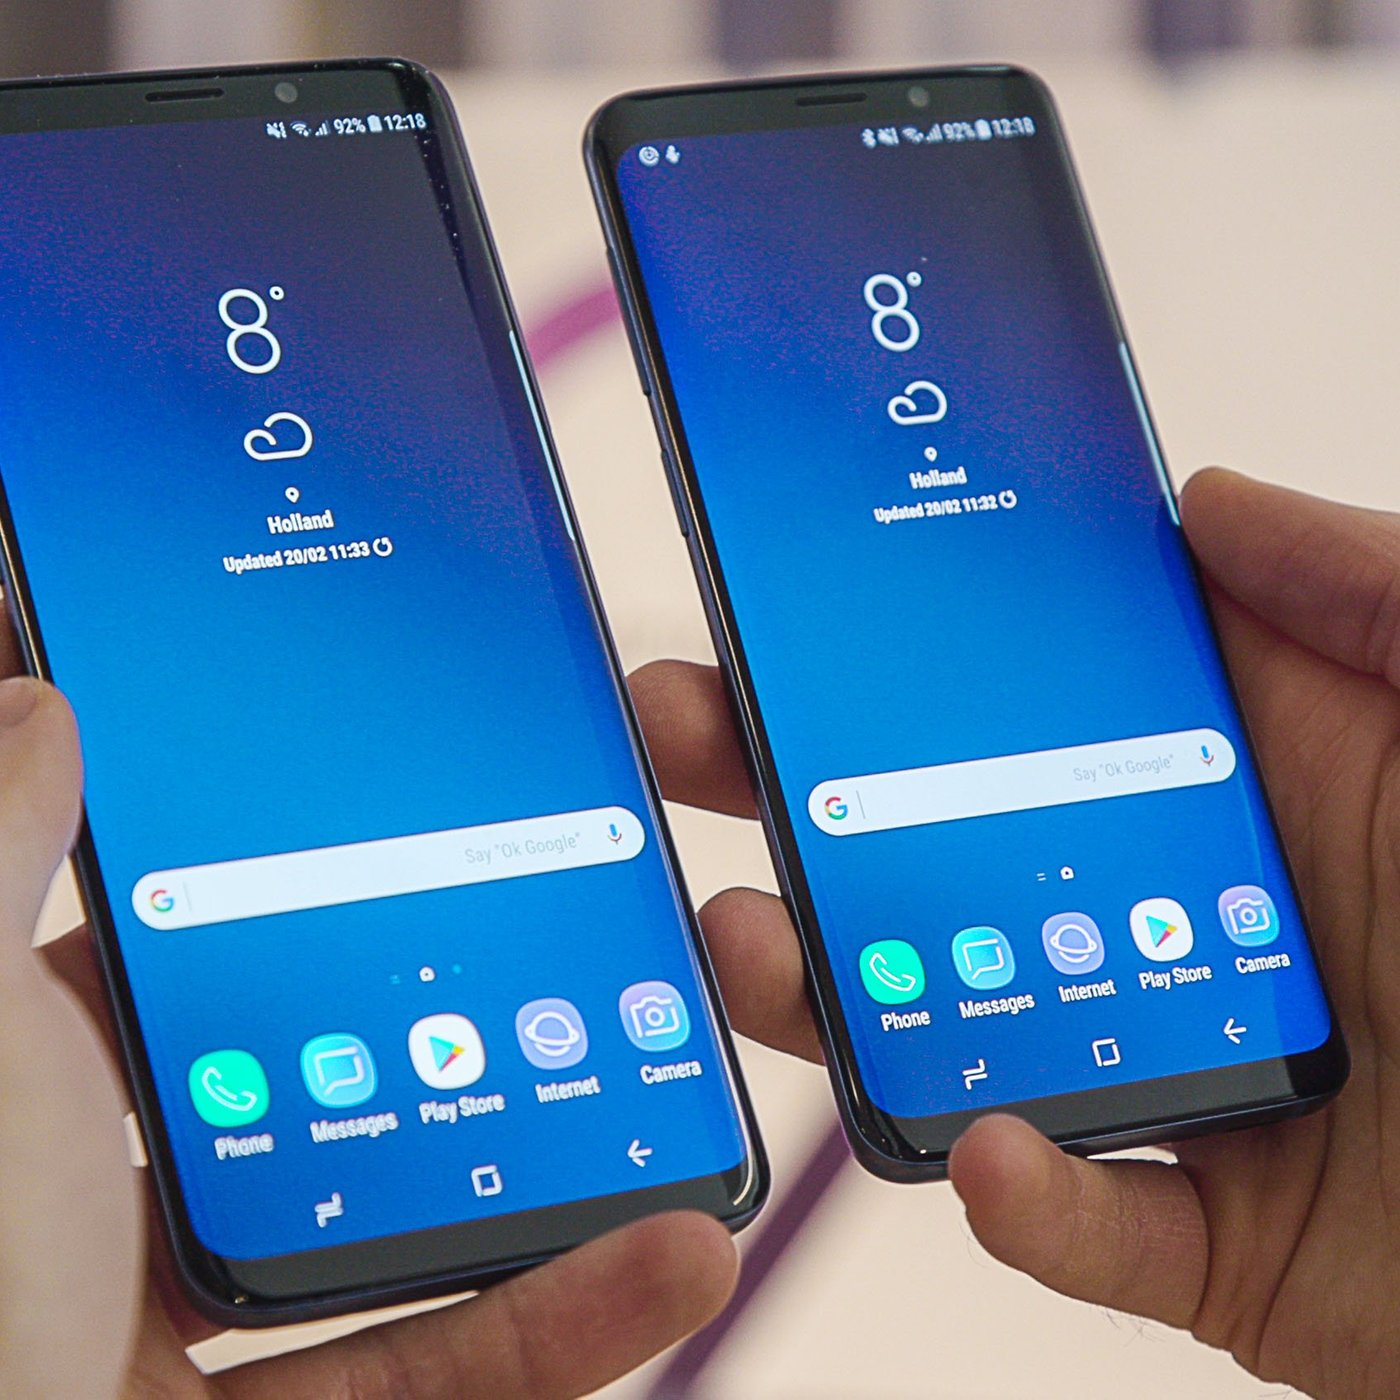 All About Samsung S9 and S9+